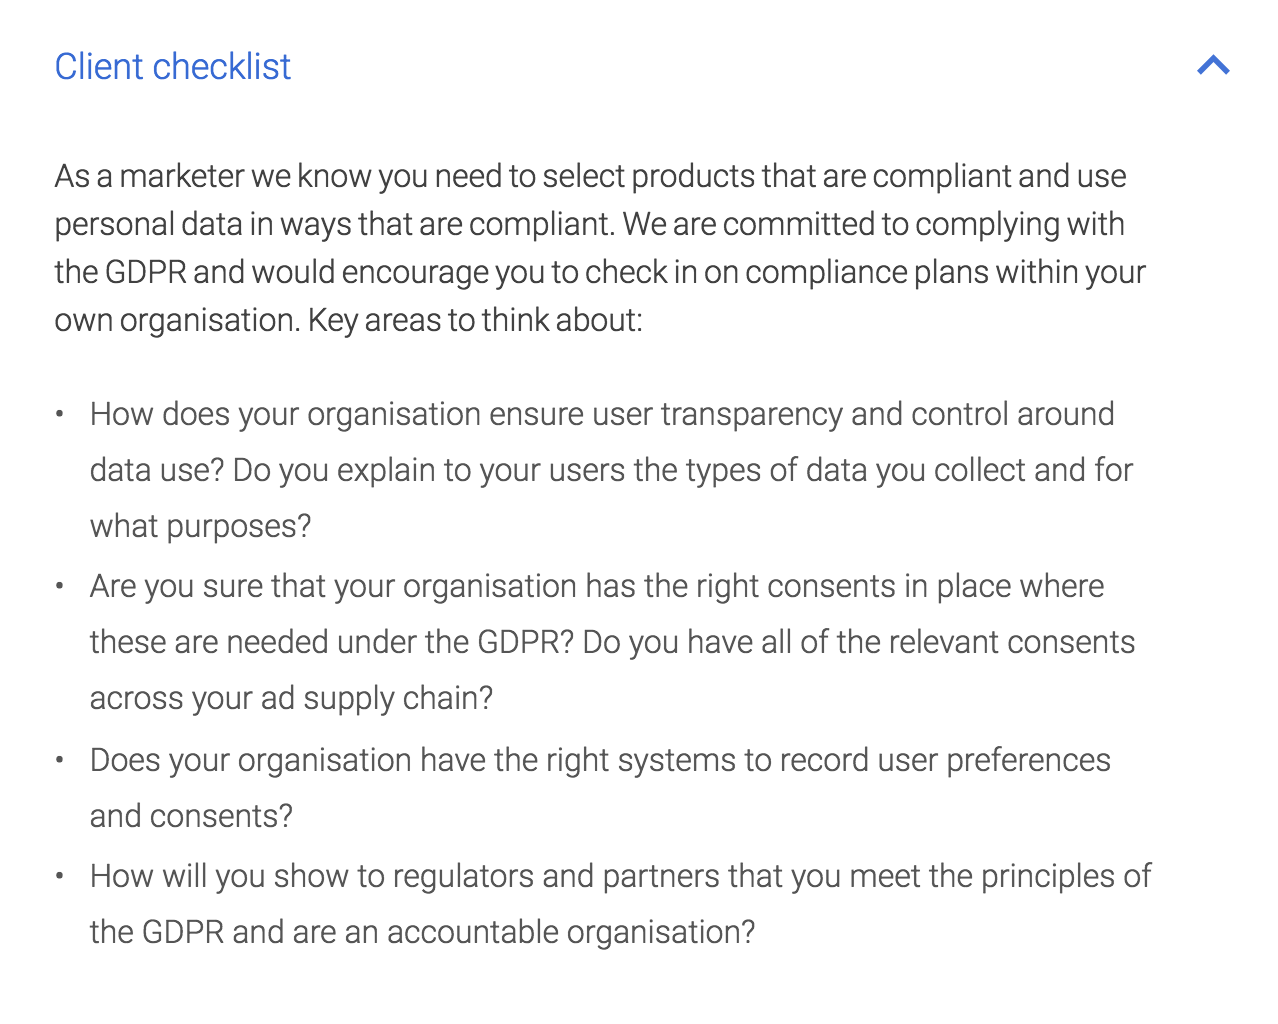 Client Checklist: As a marketer we know you need to select products that are compliant and use personal data in ways that are compliant. We are committed to complying with the GDPR and would encourage you to check in on compliance plans within your own organisation. Key areas to think about: How does your organisation ensure user transparency and control around data use? Do you explain to your users the types of data you collect and for what purposes? Are you sure that your organisation has the right consents in place where these are needed under the GDPR? Do you have all of the relevant consents across your ad supply chain? Does your organisation have the right systems to record user preferences and consents? How will you show to regulators and partners that you meet the principles of the GDPR and are an accountable organisation?